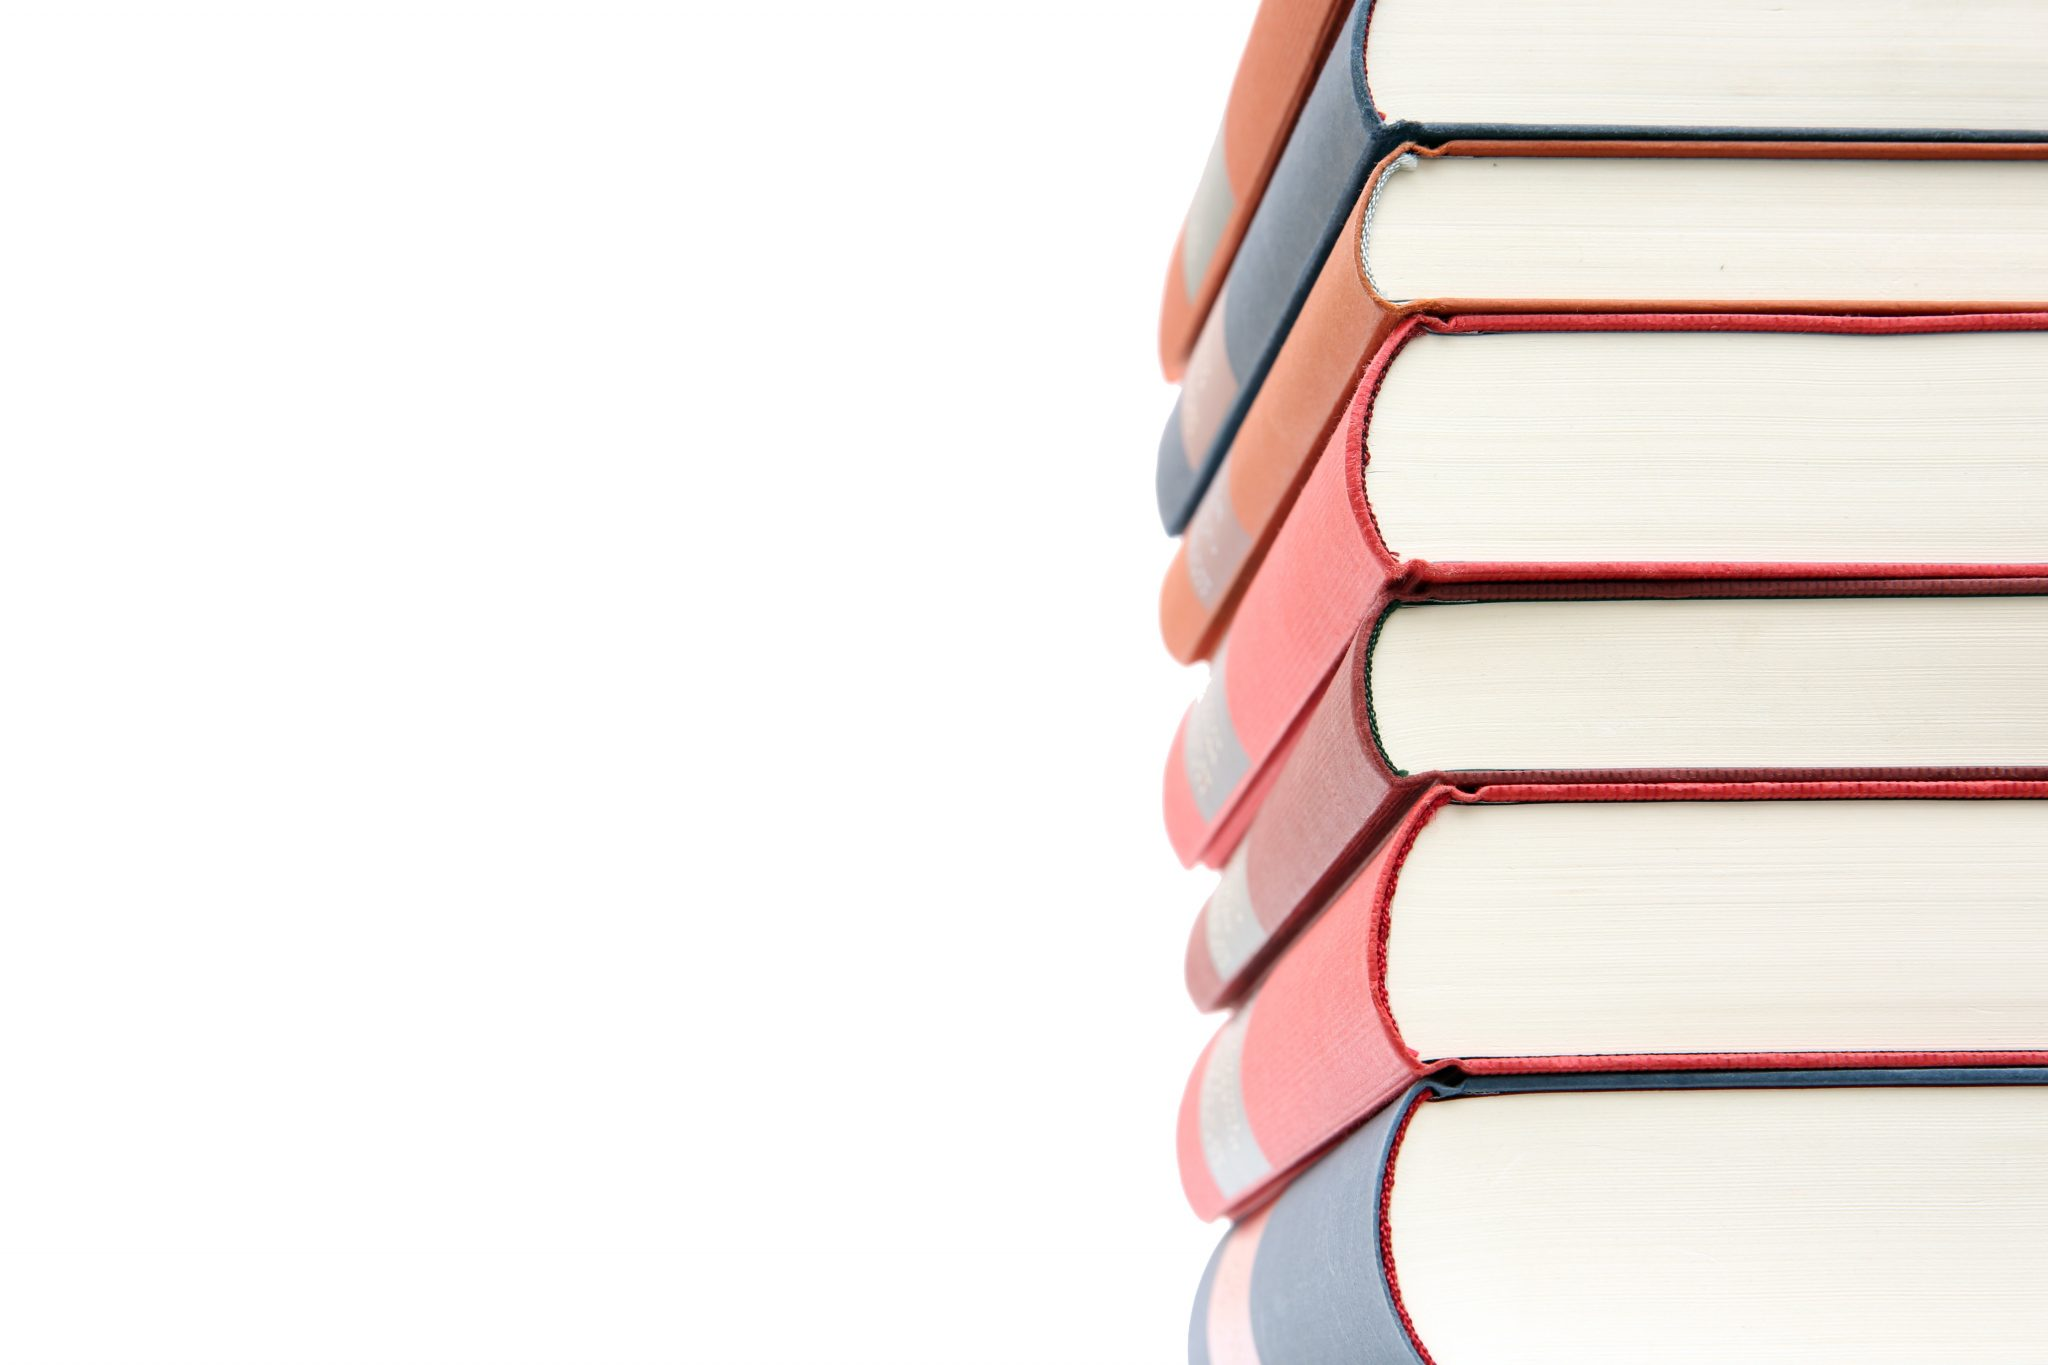 book-stack-books-education-48126